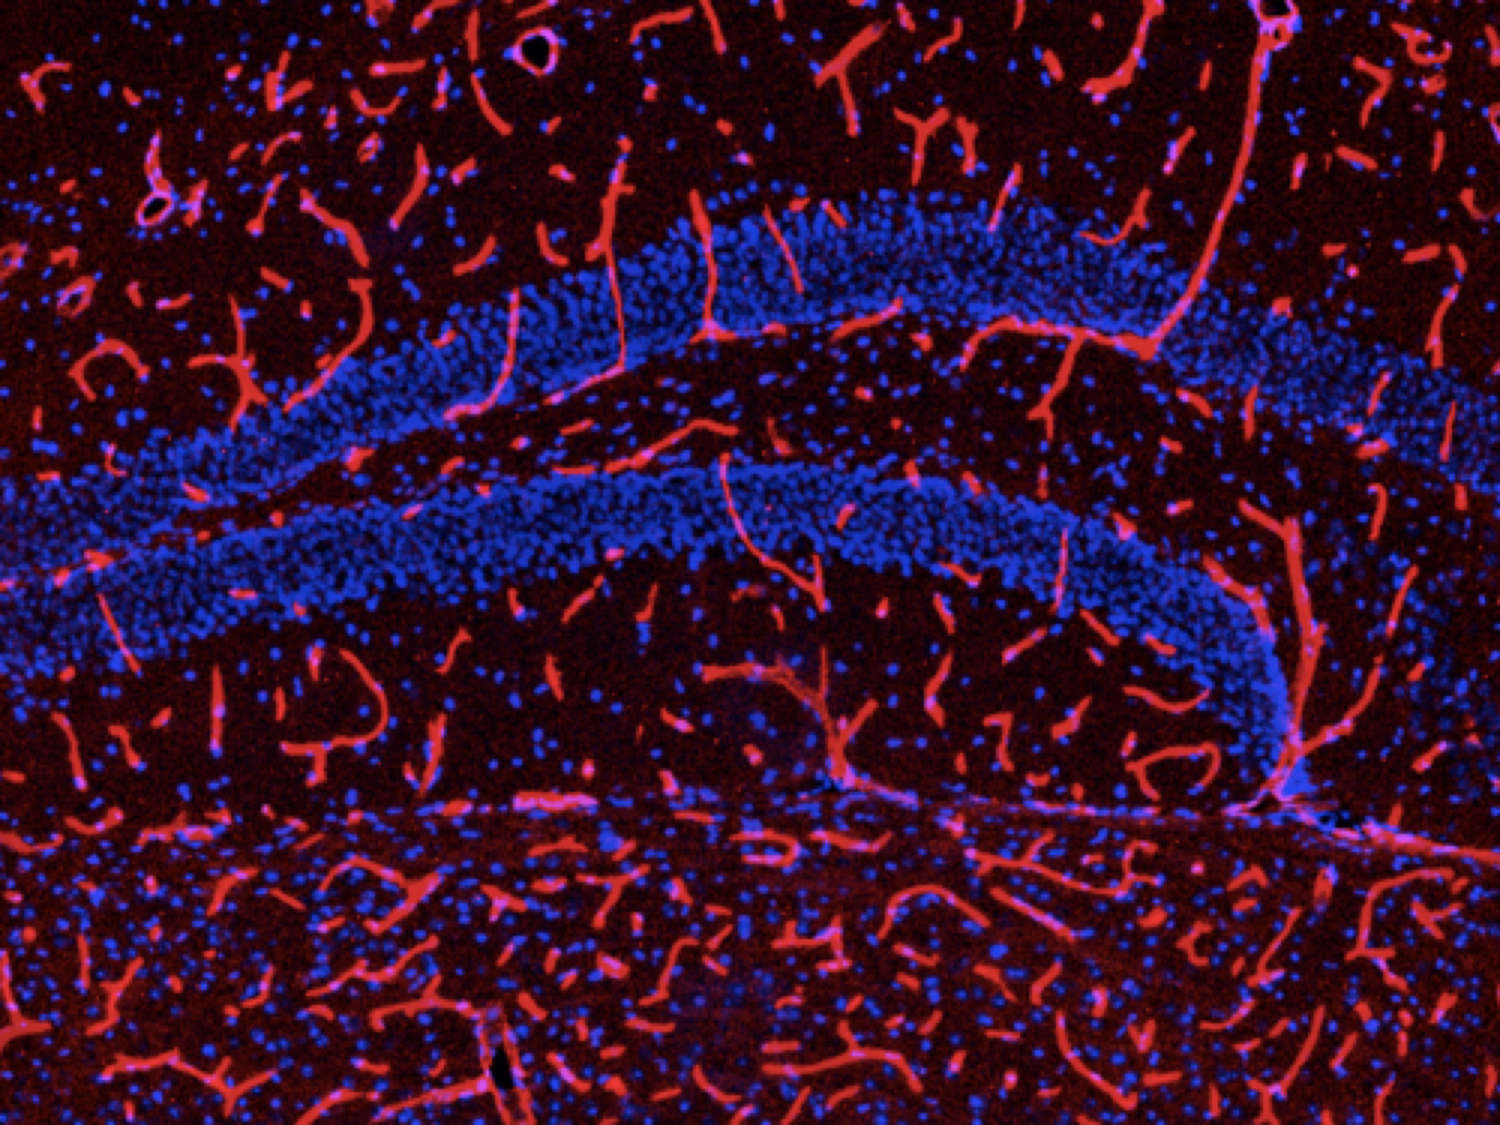 Our paper demonstrates that low levels of light at night influence the expression of vascular endothelial growth factor (VEGF) and its receptors, along with cytokine mRNA, in the murine hippocampus. Pictured above is DyLight-594 labeled tomato lectin (red), which labels all active capillaries in the brain (Credit: JCB)